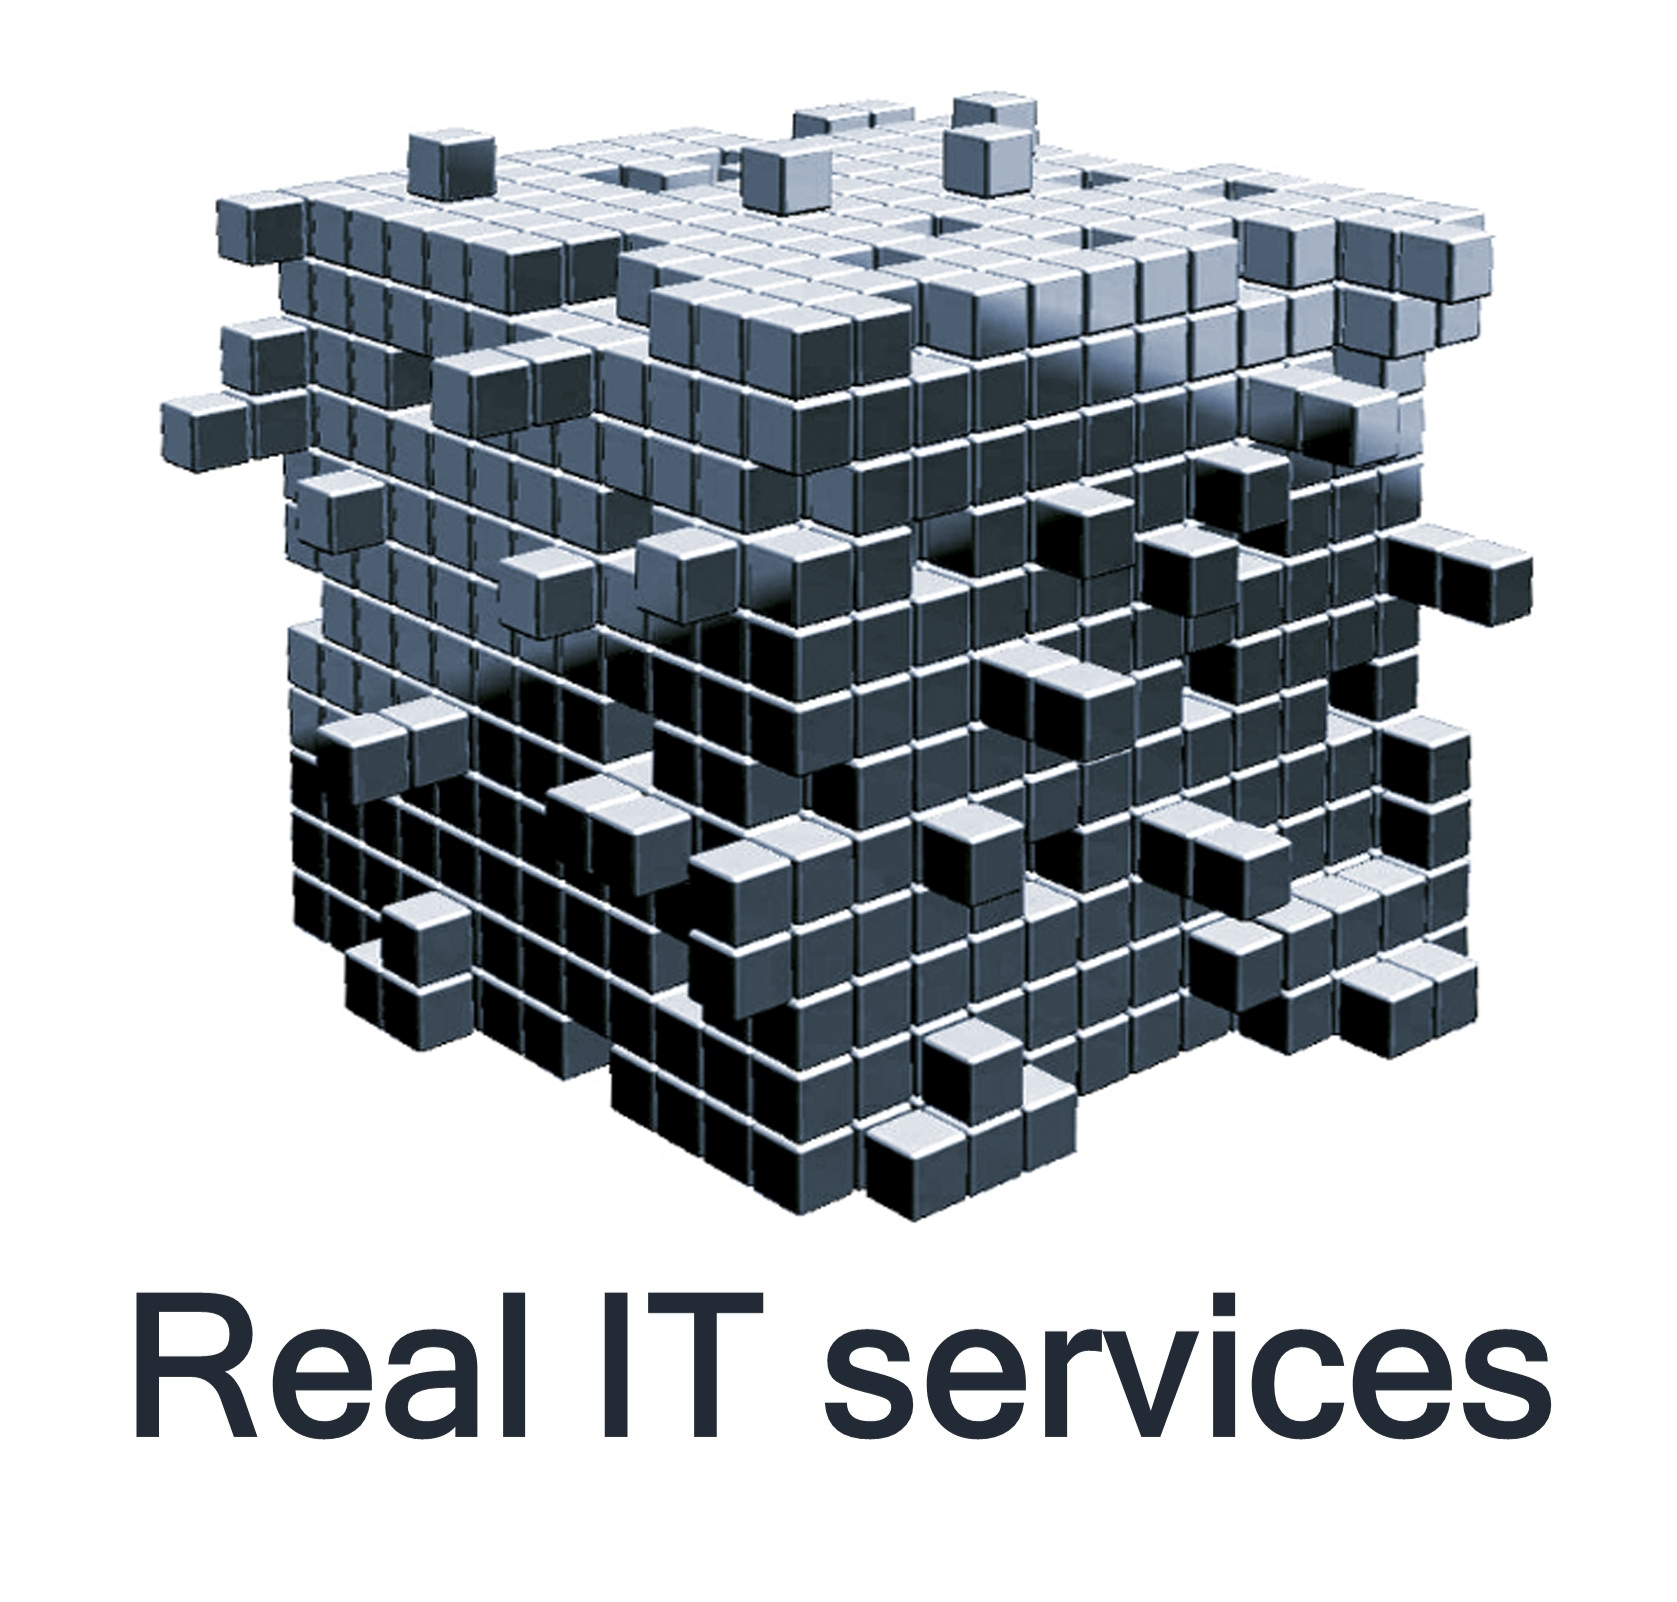 Real IT services